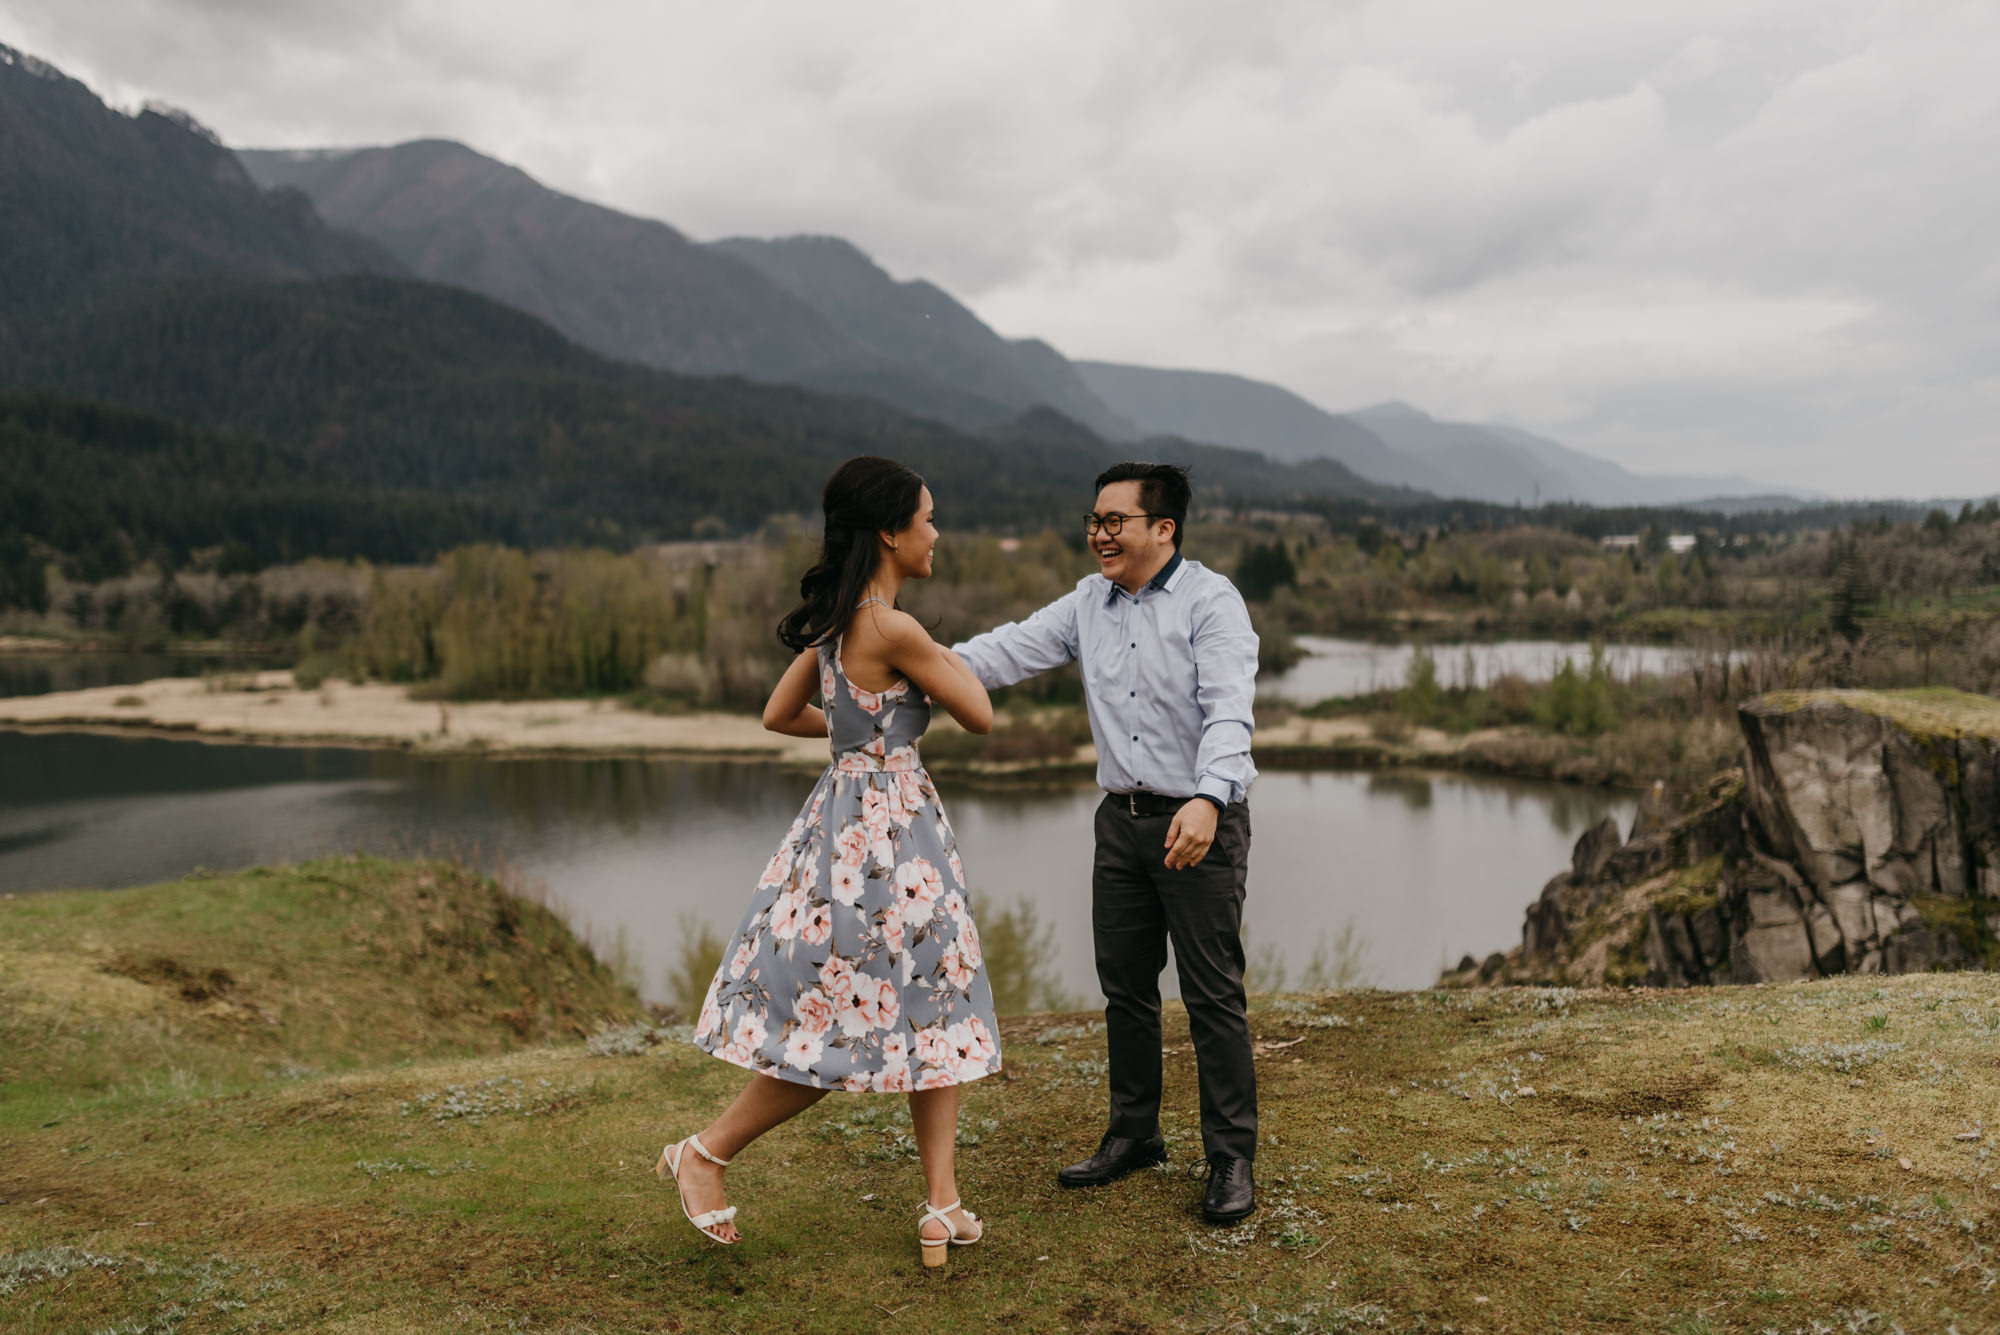 cascade-locks-engagement-cloudy-fun-sunset-4826.jpg